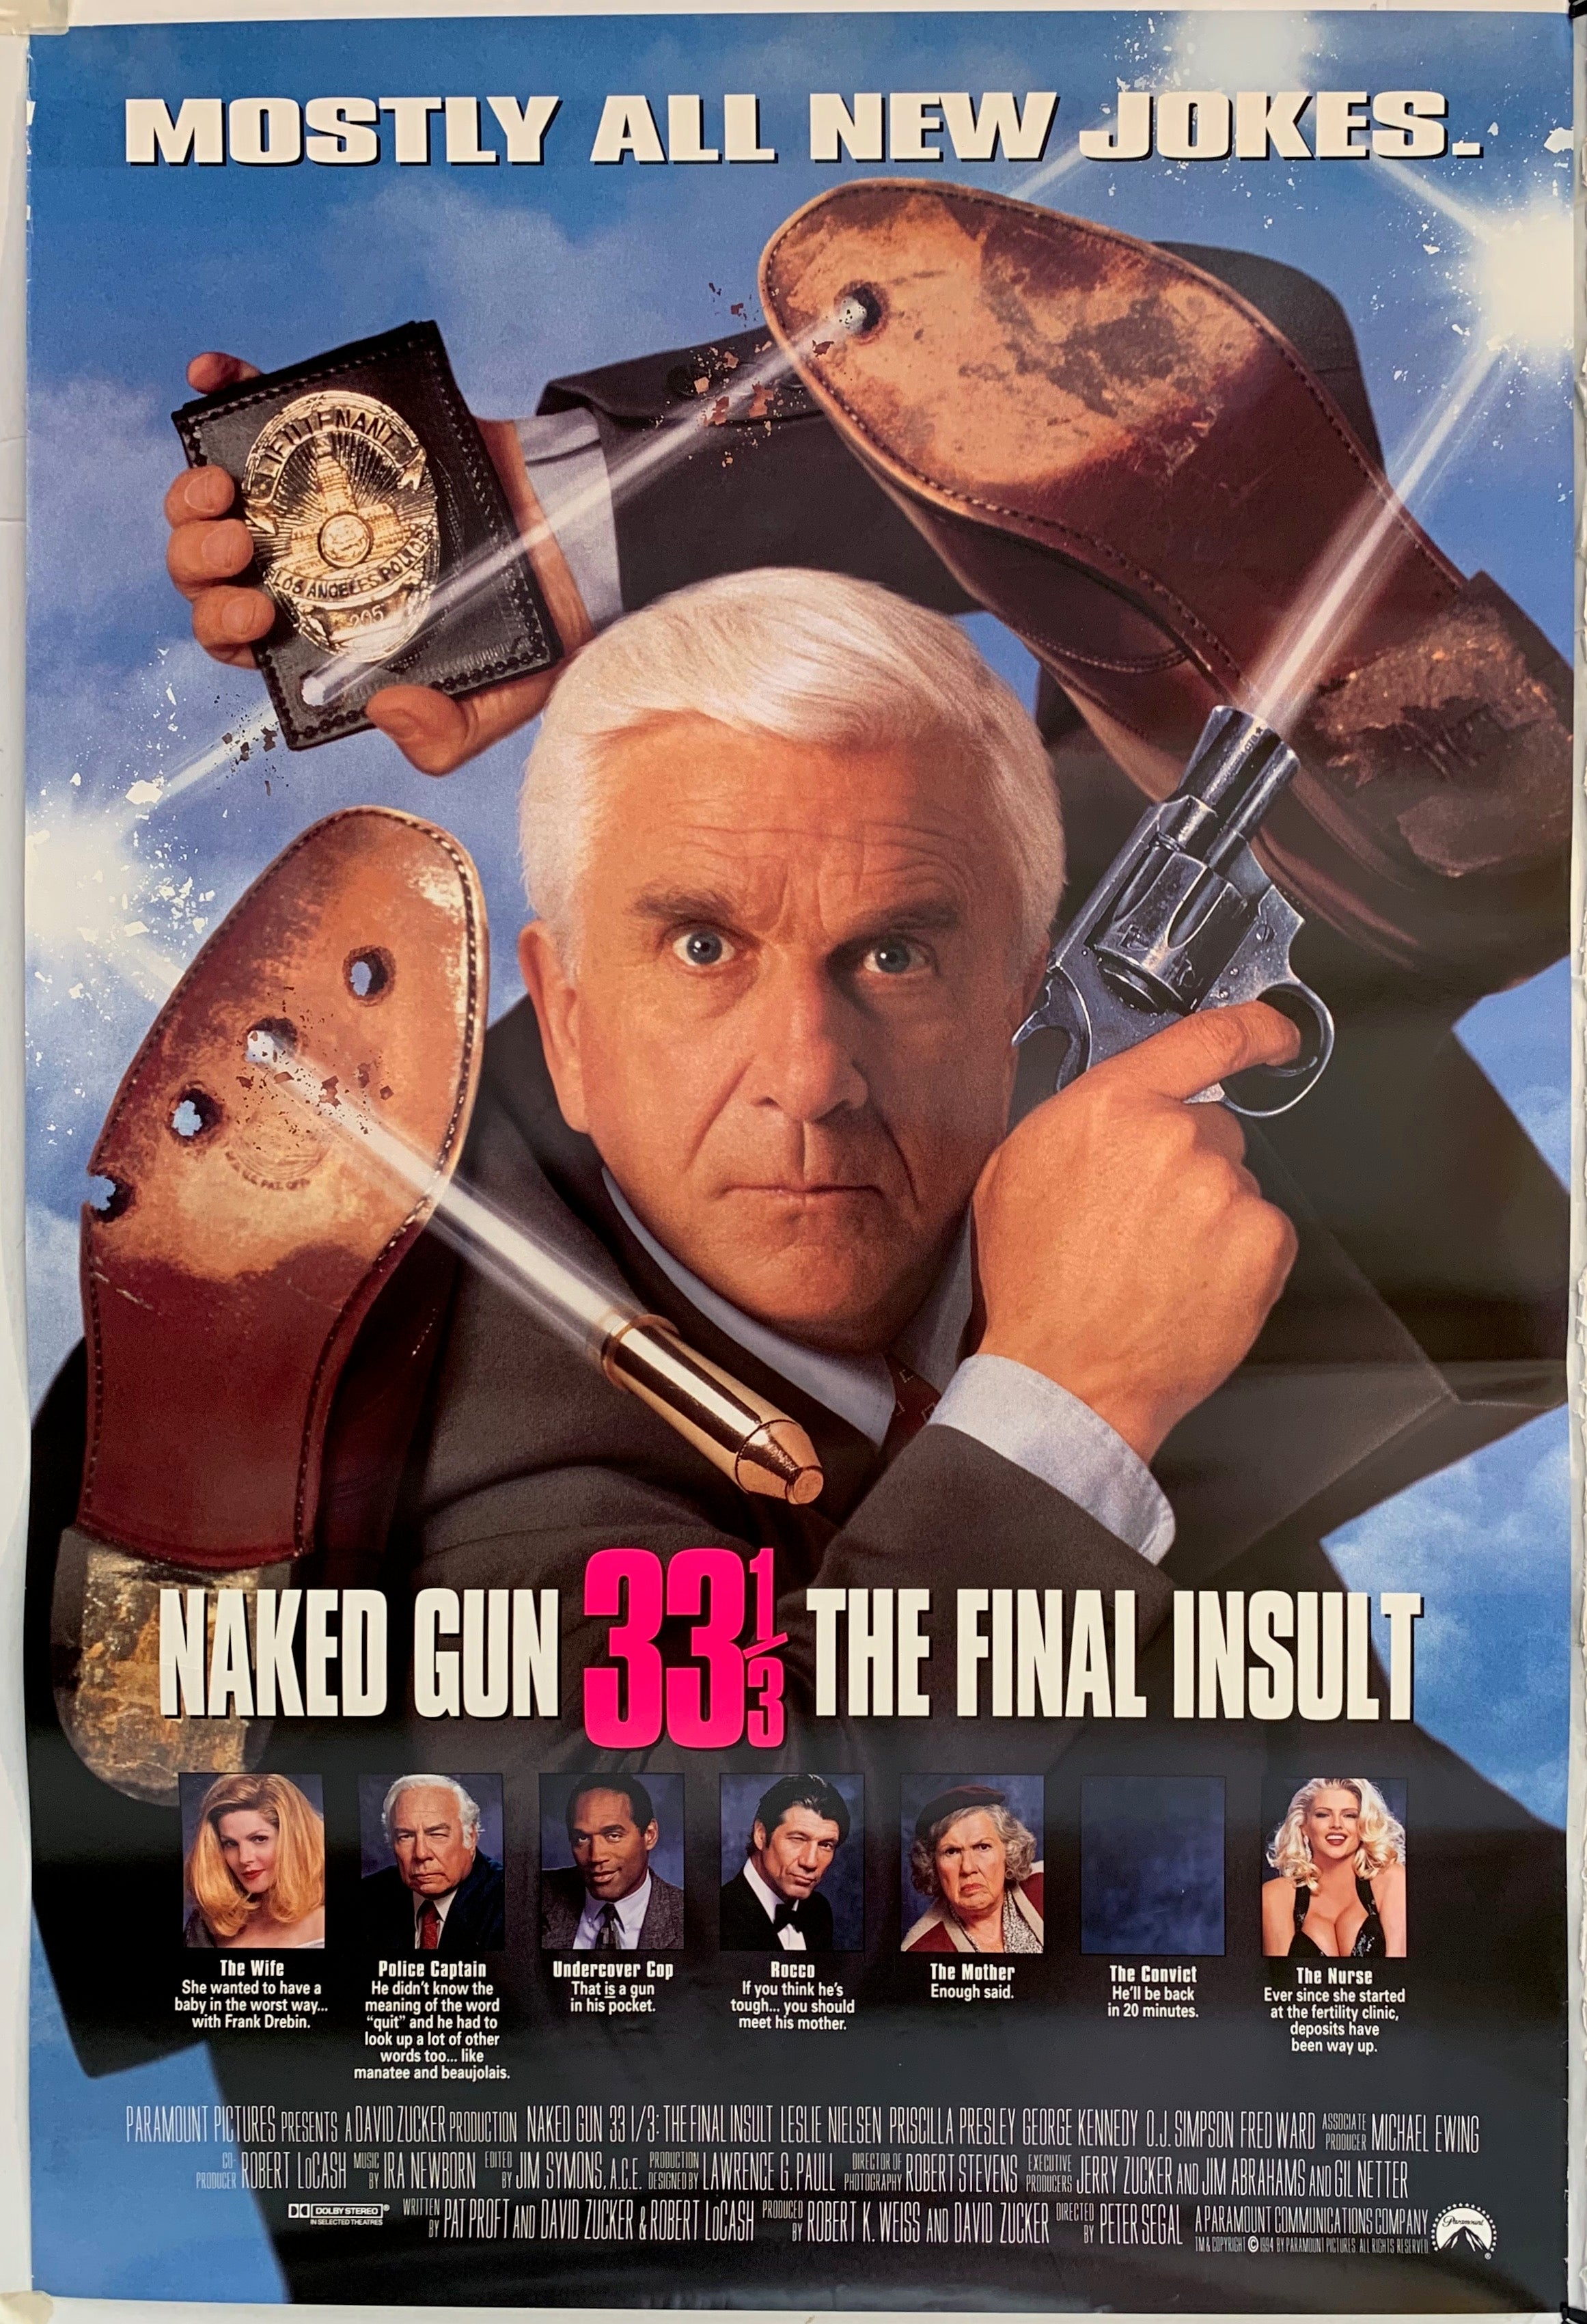 Naked Gun 33 1/3 The Final Insult